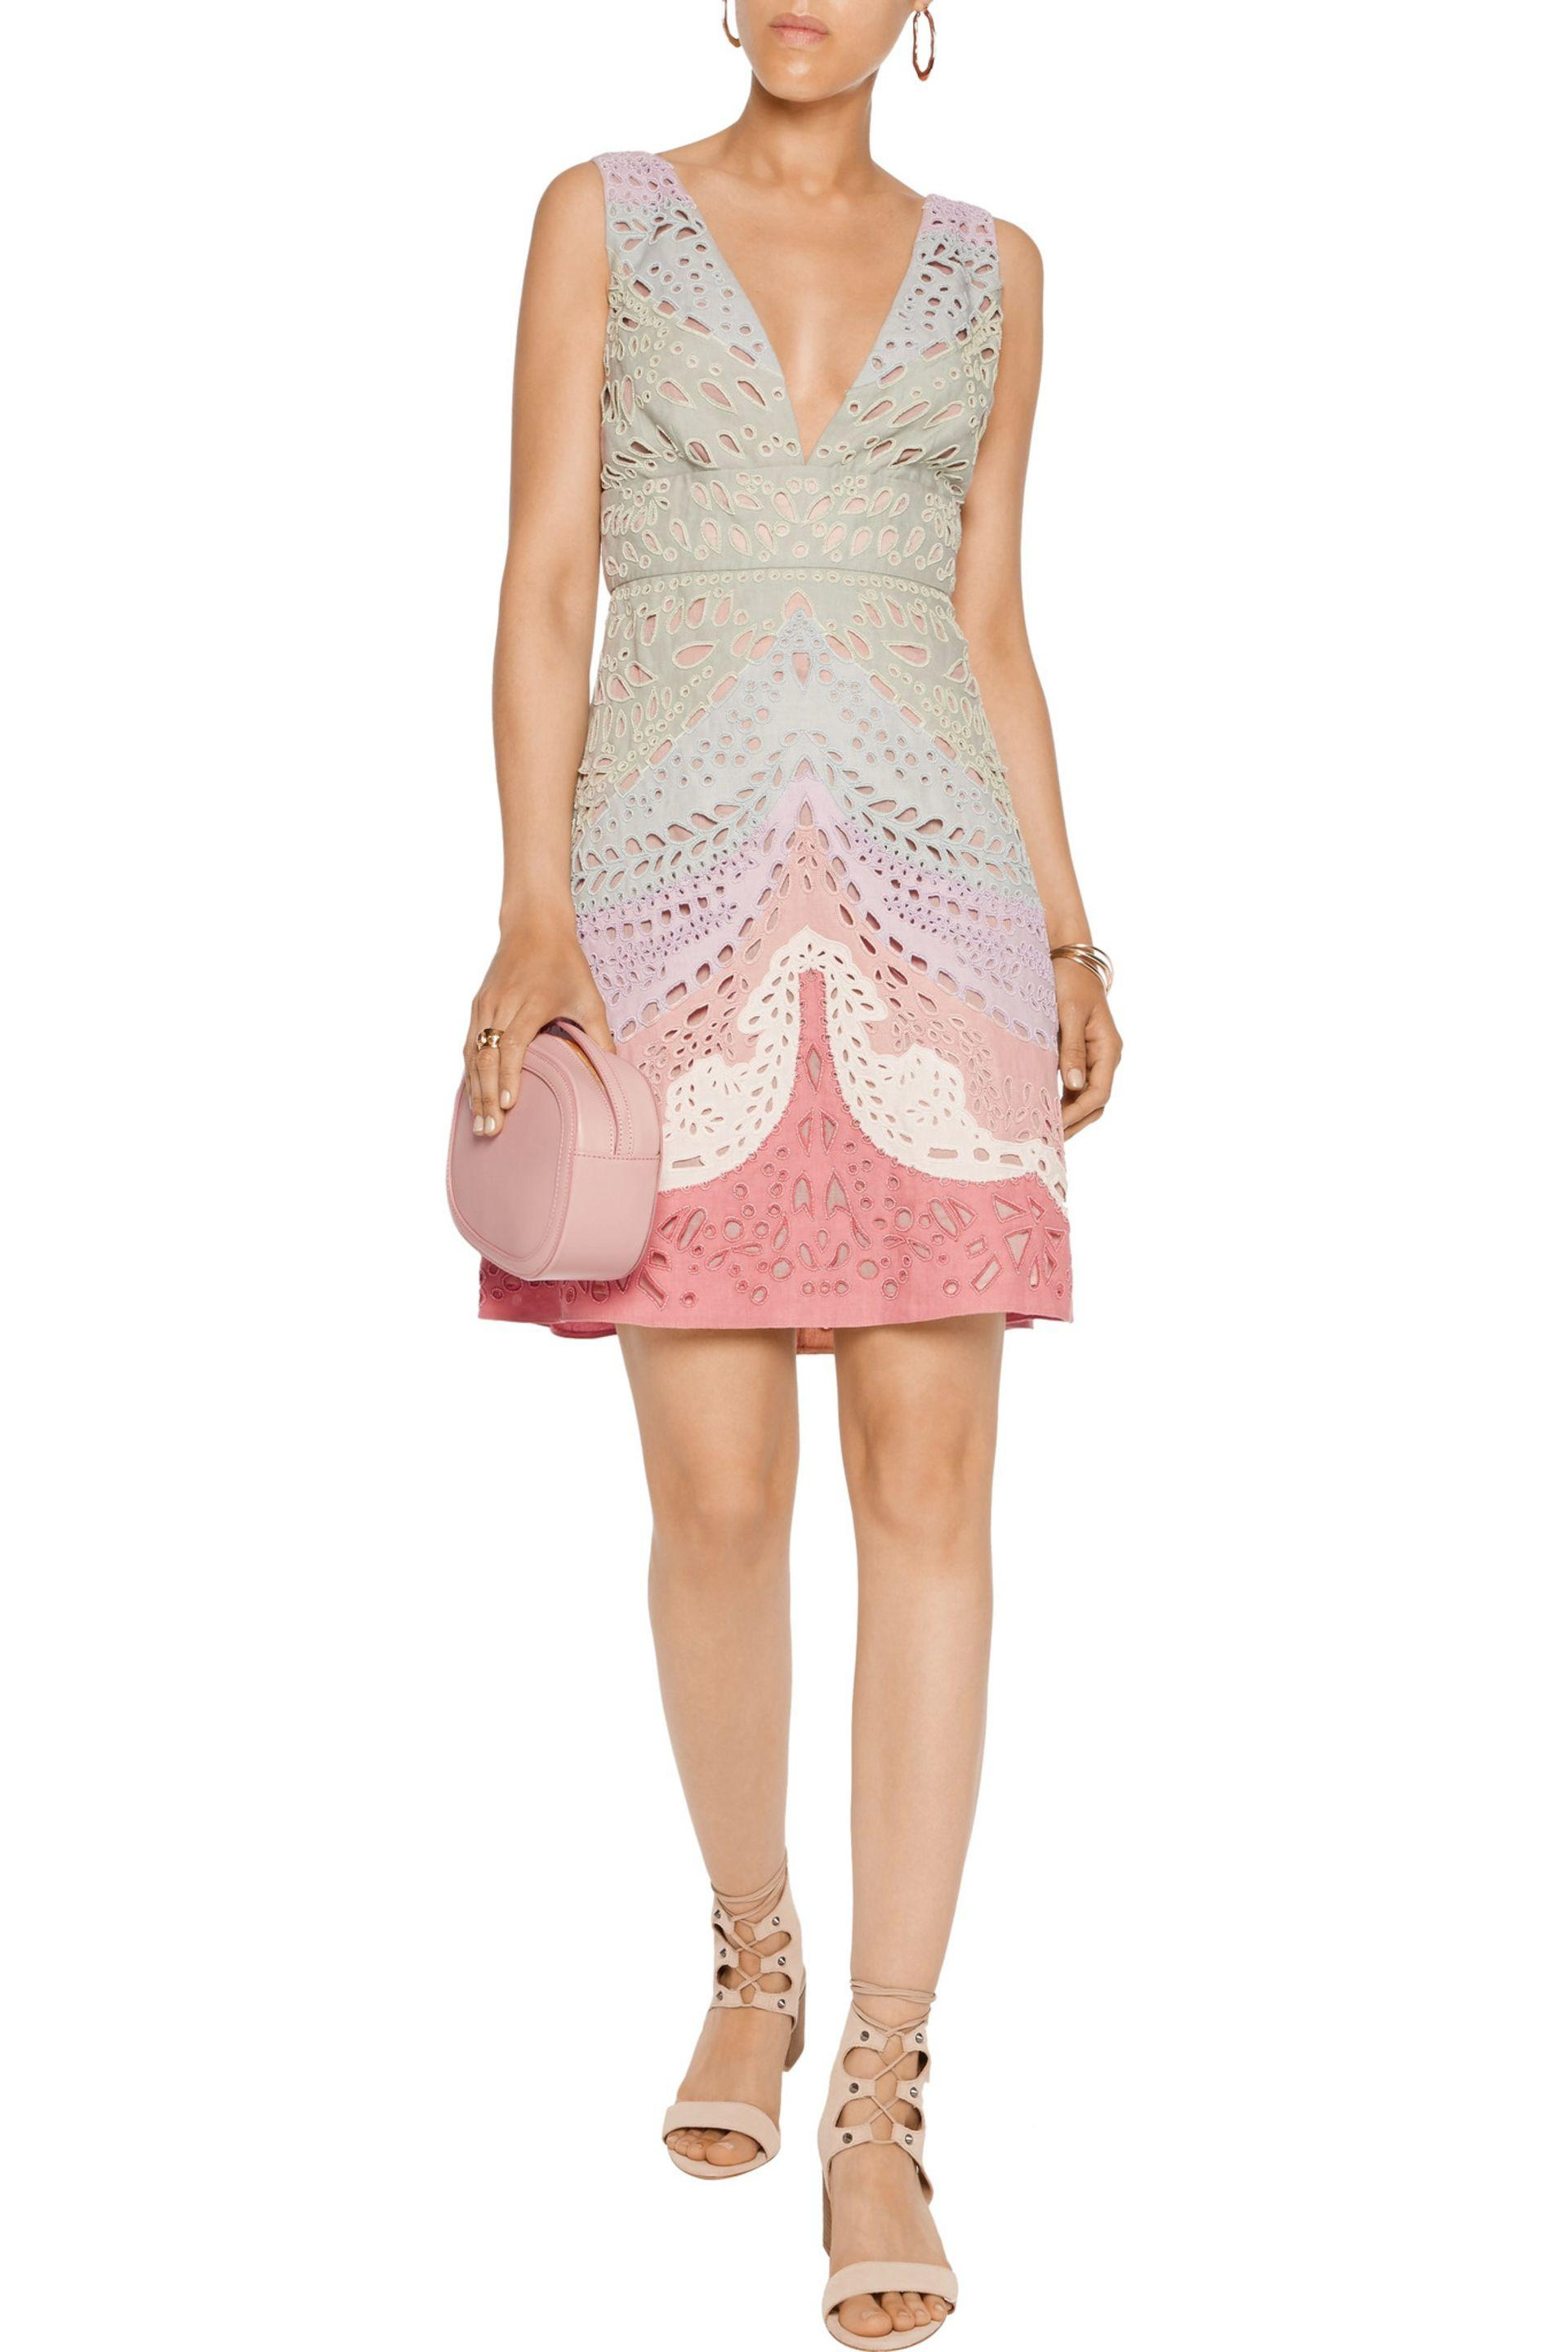 75370461ef32 Valentino - Multicolor Embellished Broderie Anglaise Linen Mini Dress -  Lyst. View fullscreen